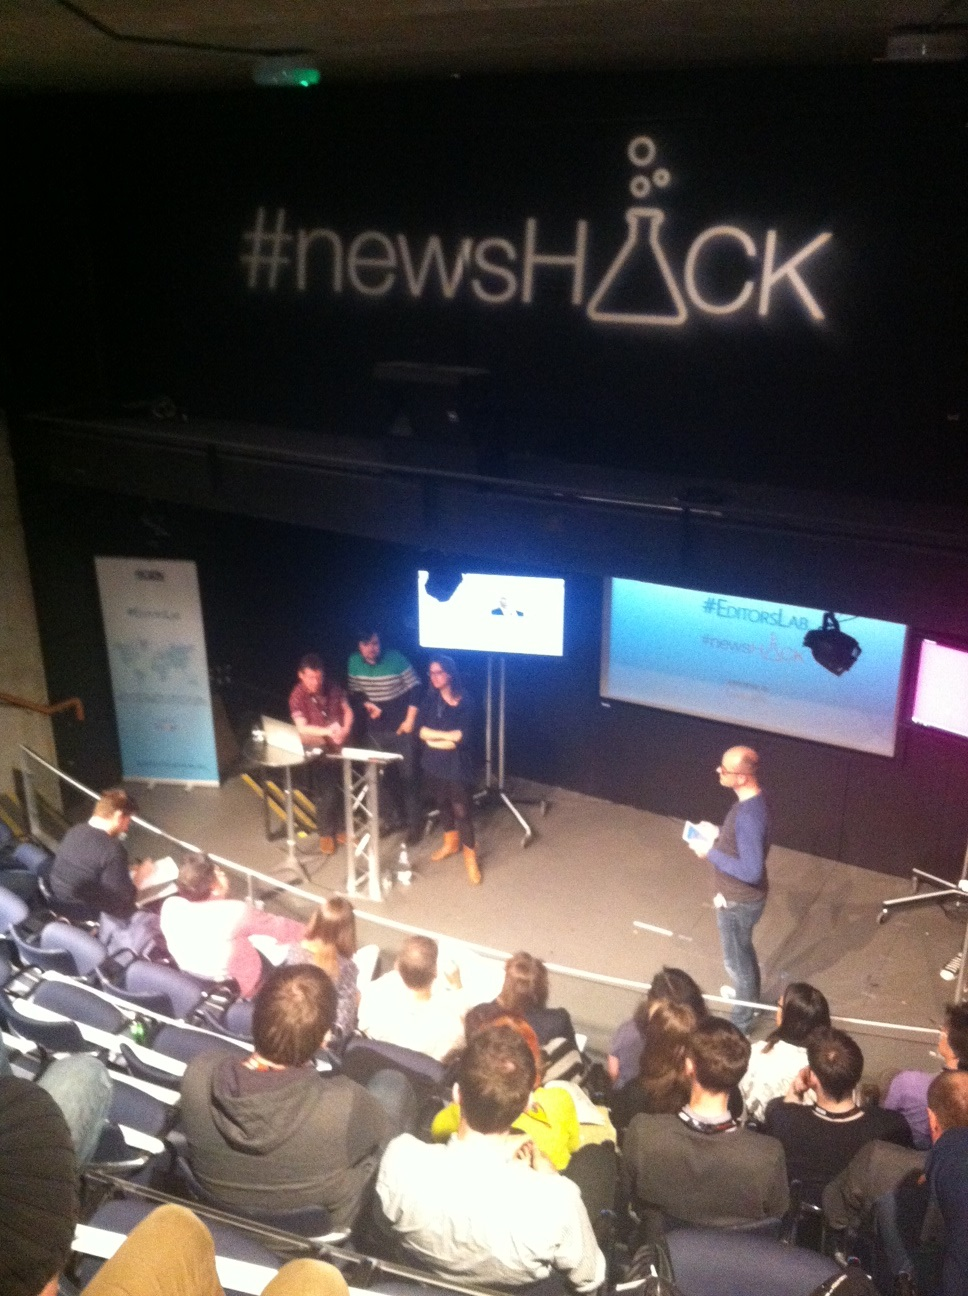 Robin Cramp runs the show in Glasgow #newsHACK